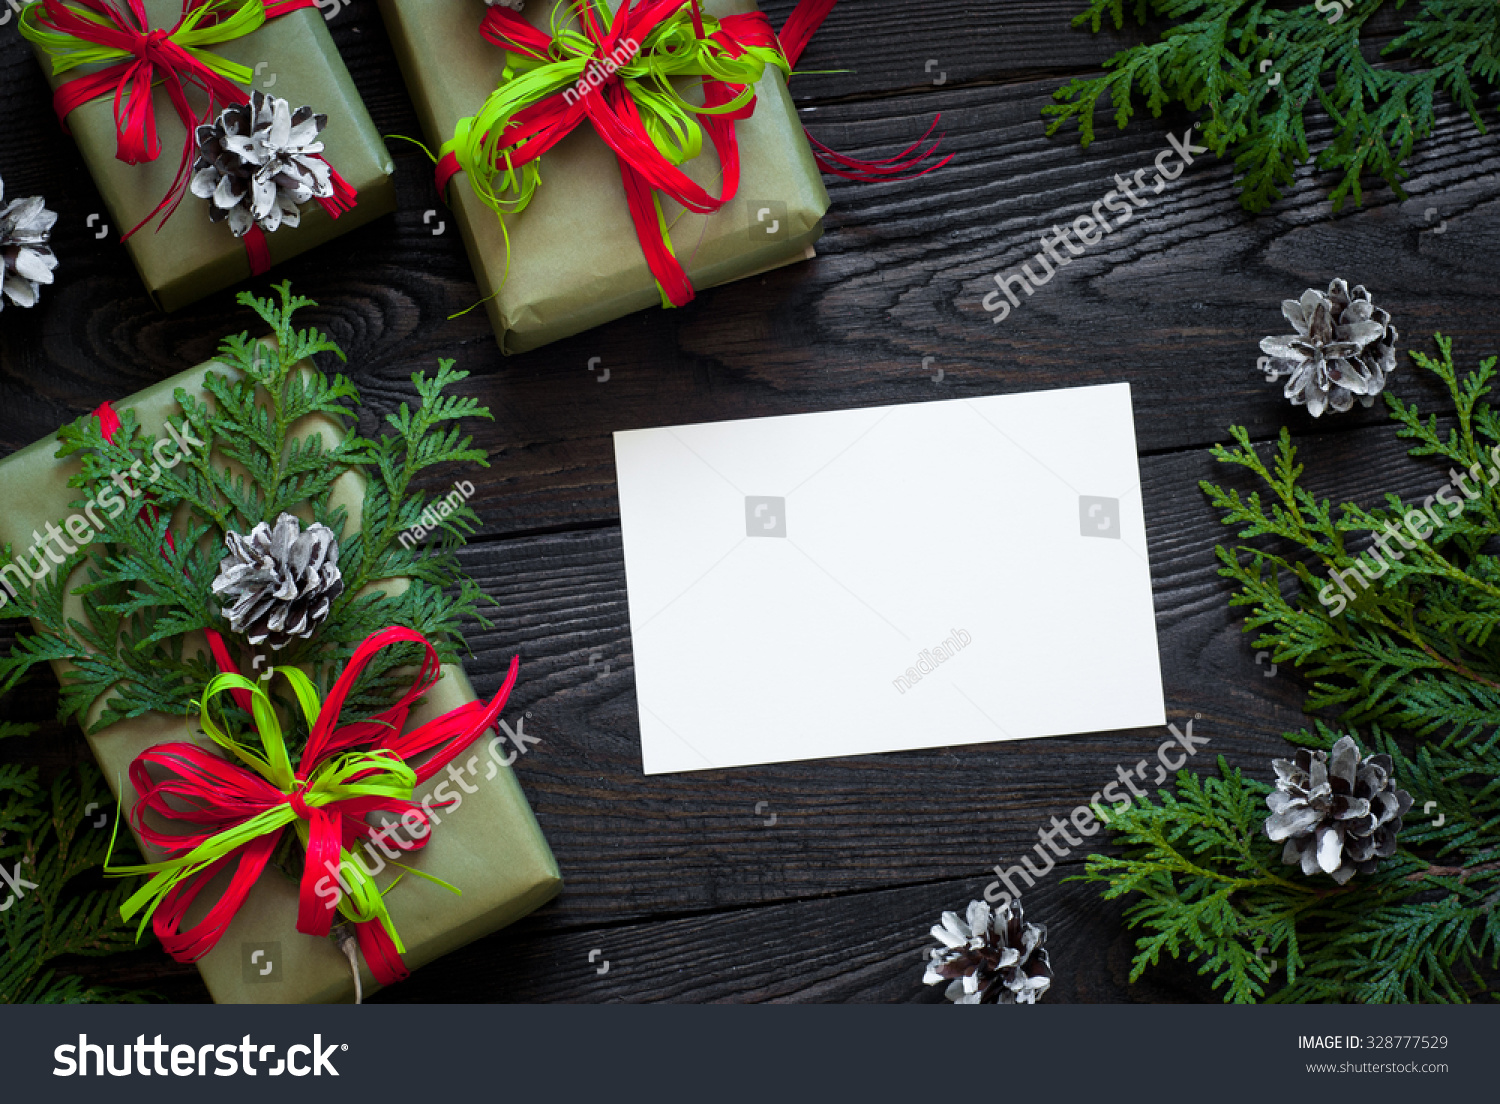 Several Boxes Of Gifts Wrapped In Paper And Decorated With Ribbons